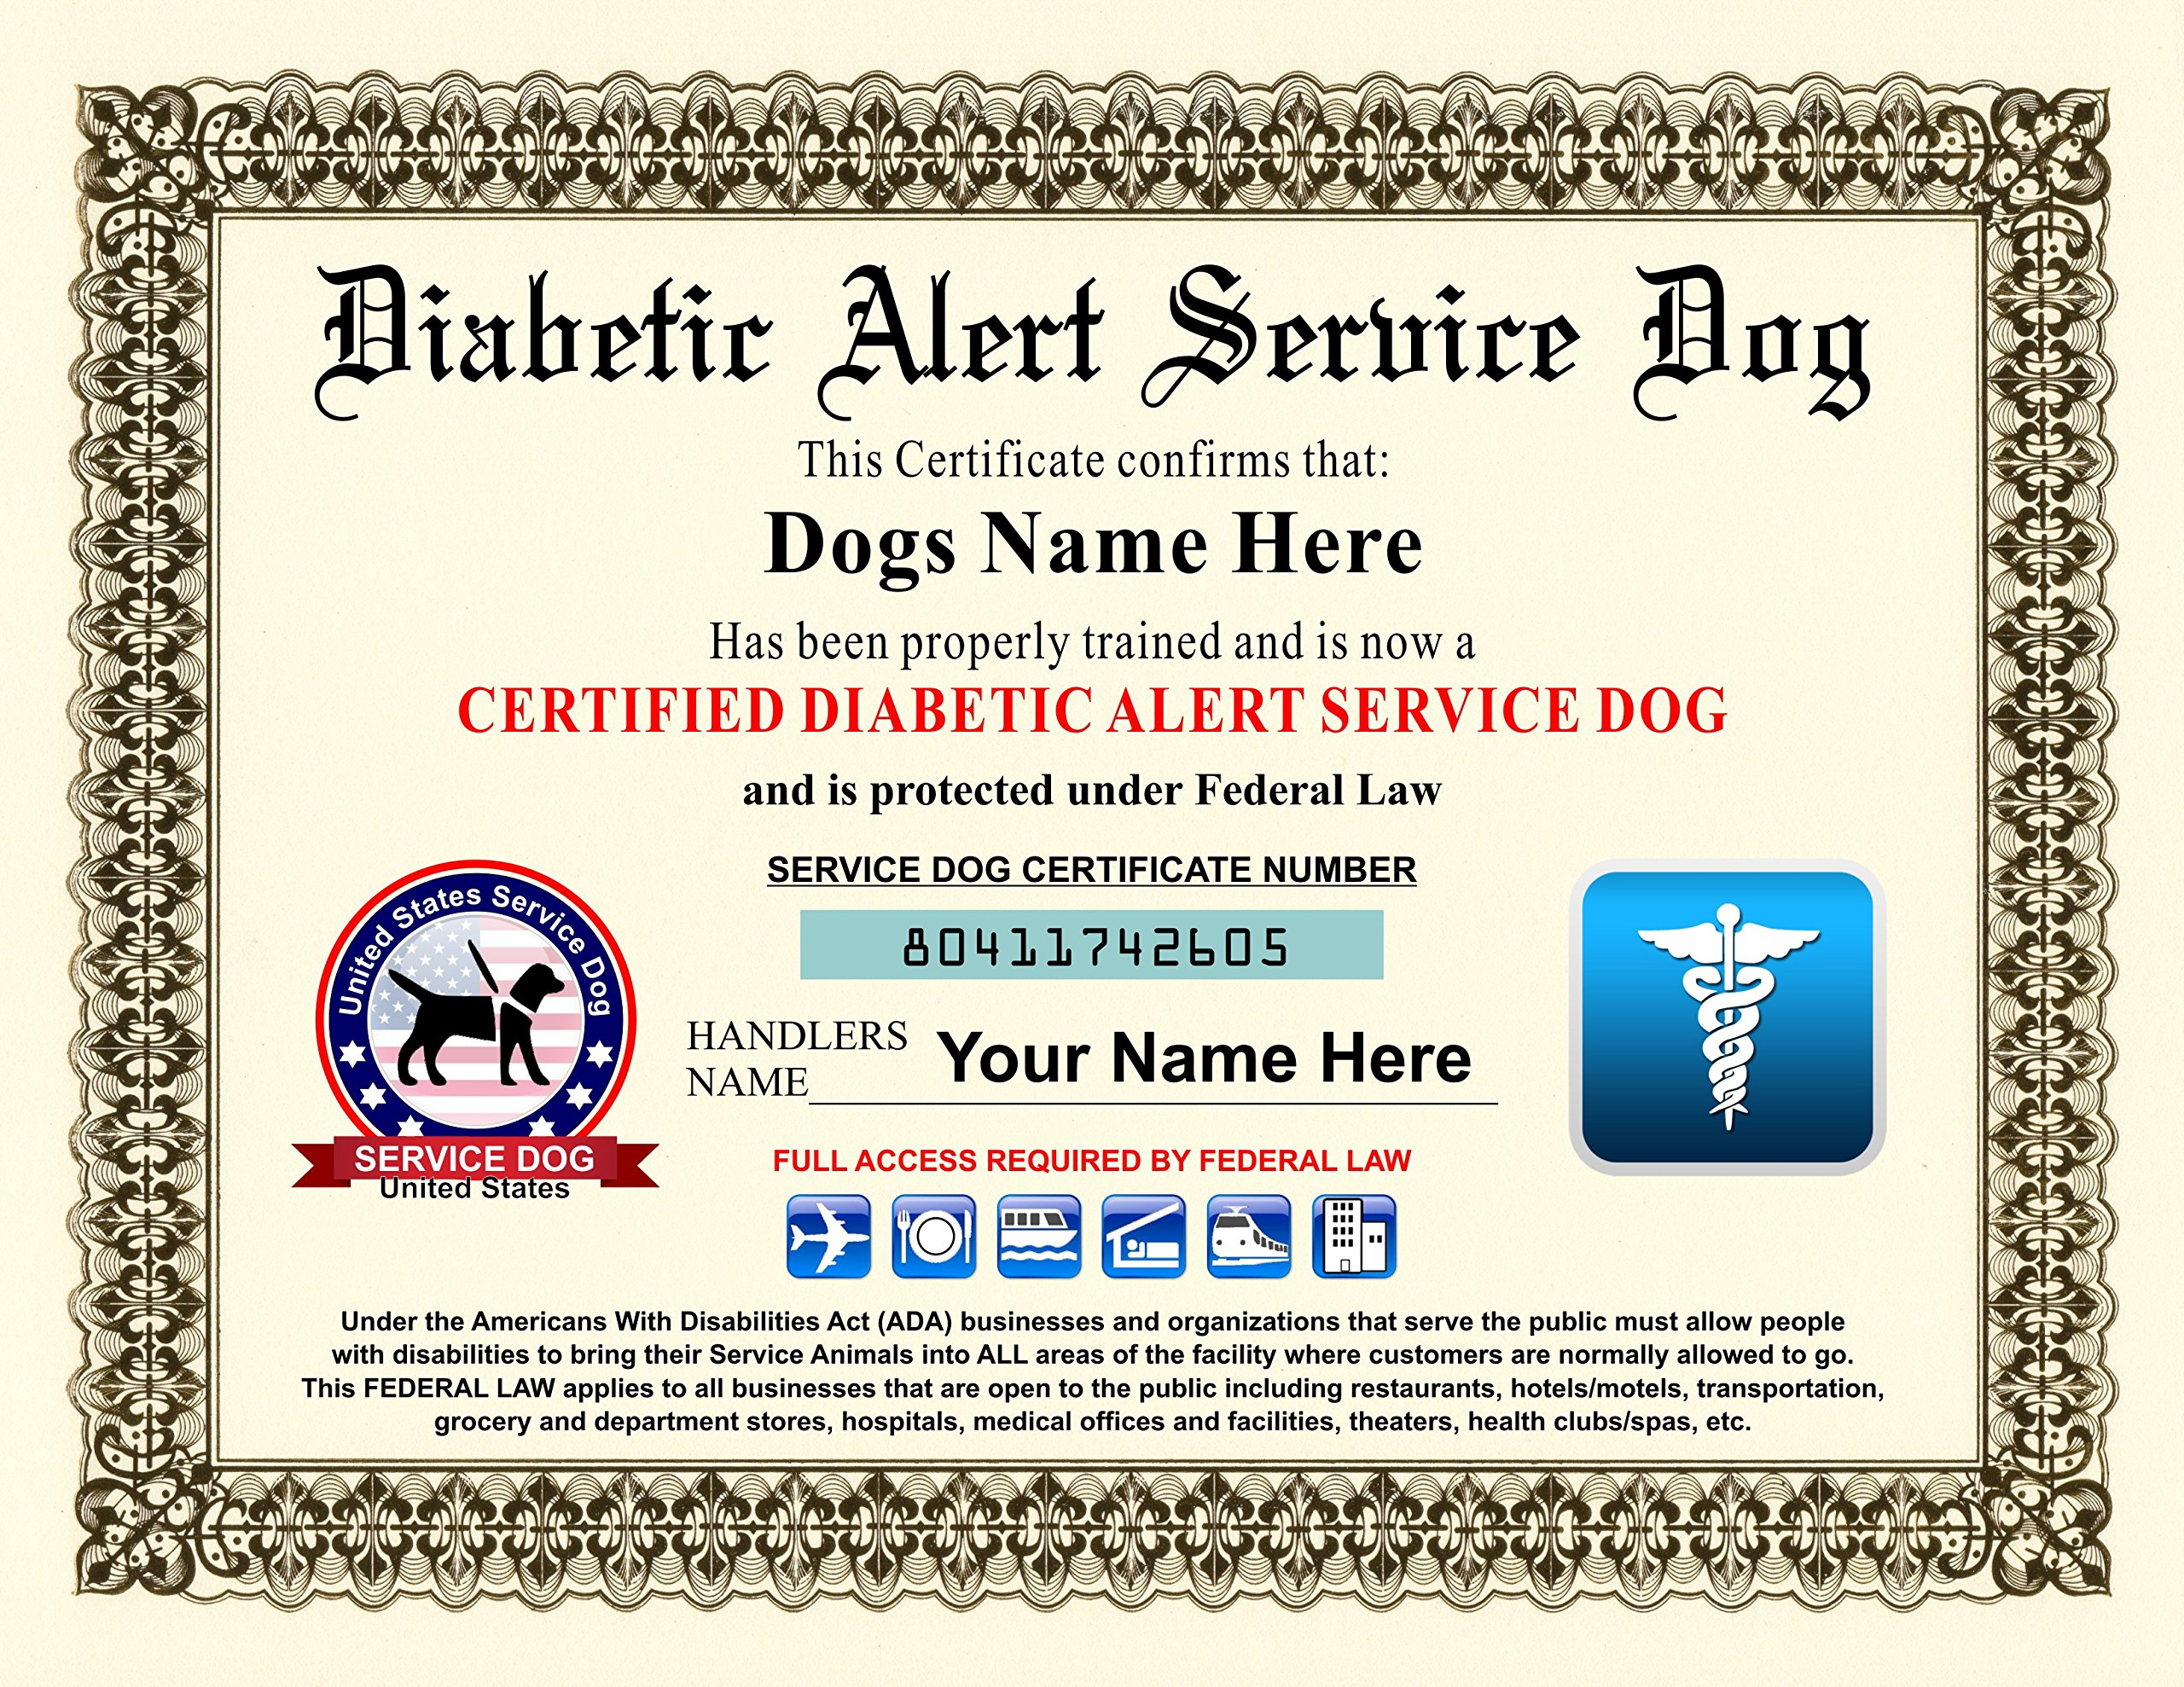 Diabetic Alert Service Dog Certificate - Customizable with Dogs / Handlers Name